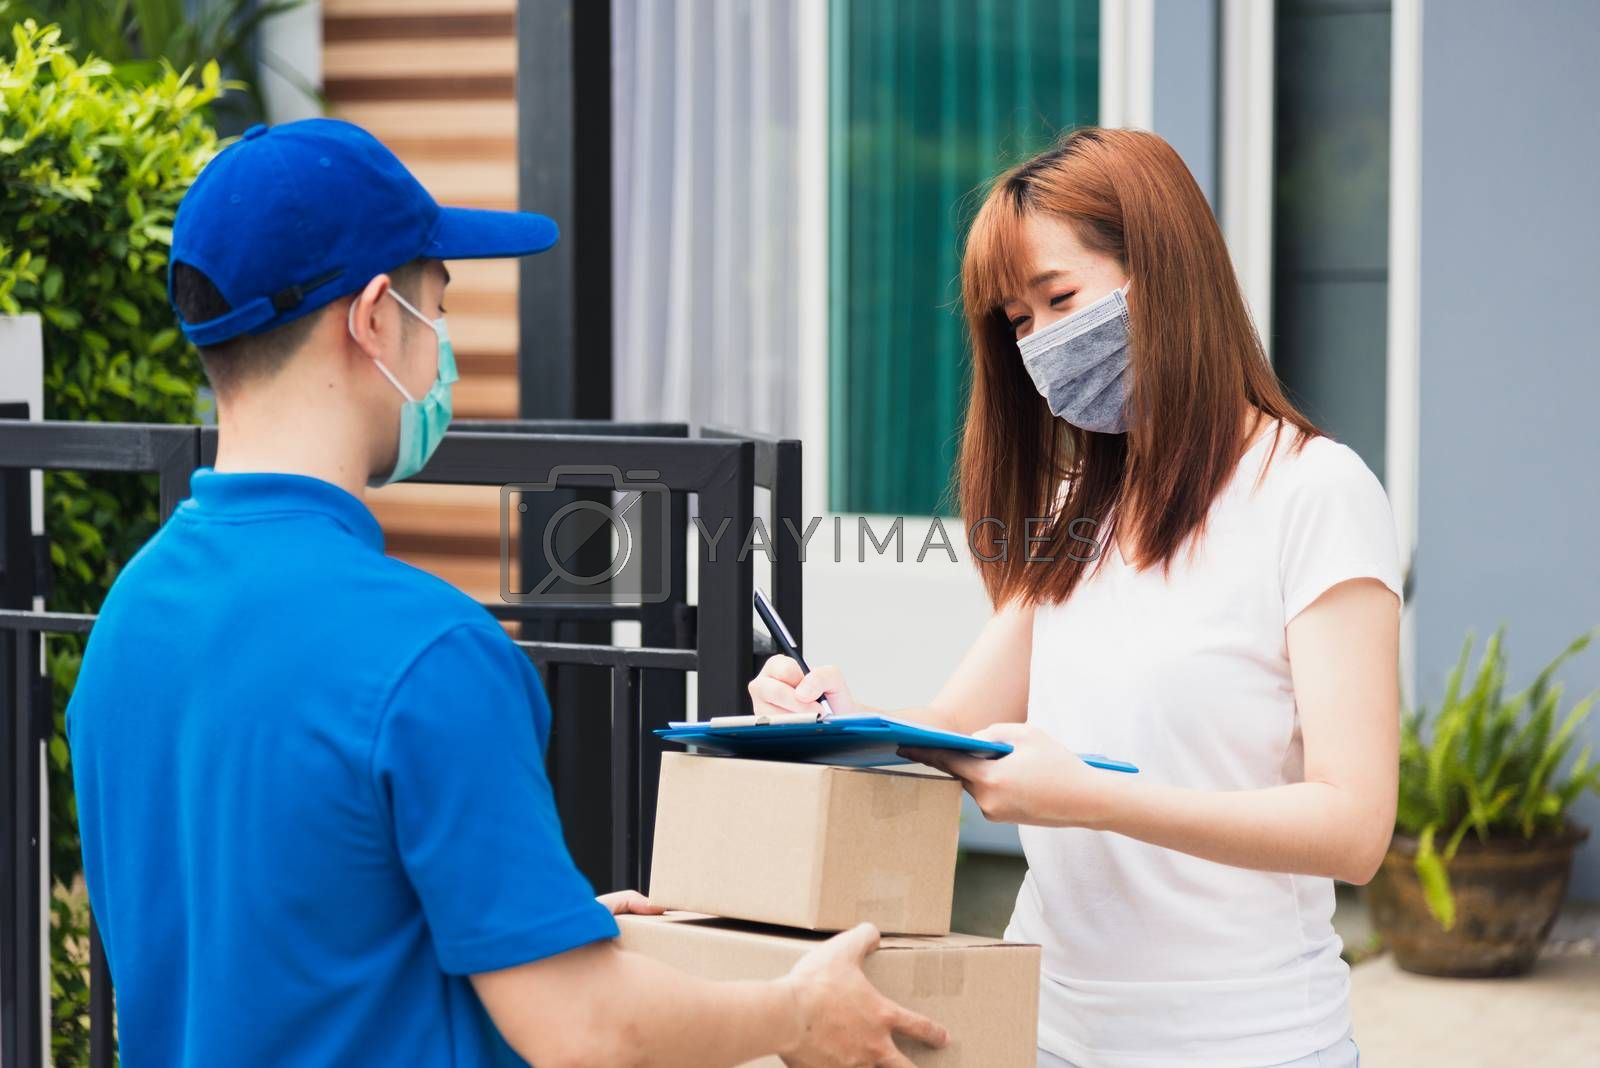 Asian young delivery man with package post boxed he protective face mask service woman customer using pen signature on paper book at front home, under curfew quarantine pandemic coronavirus COVID-19